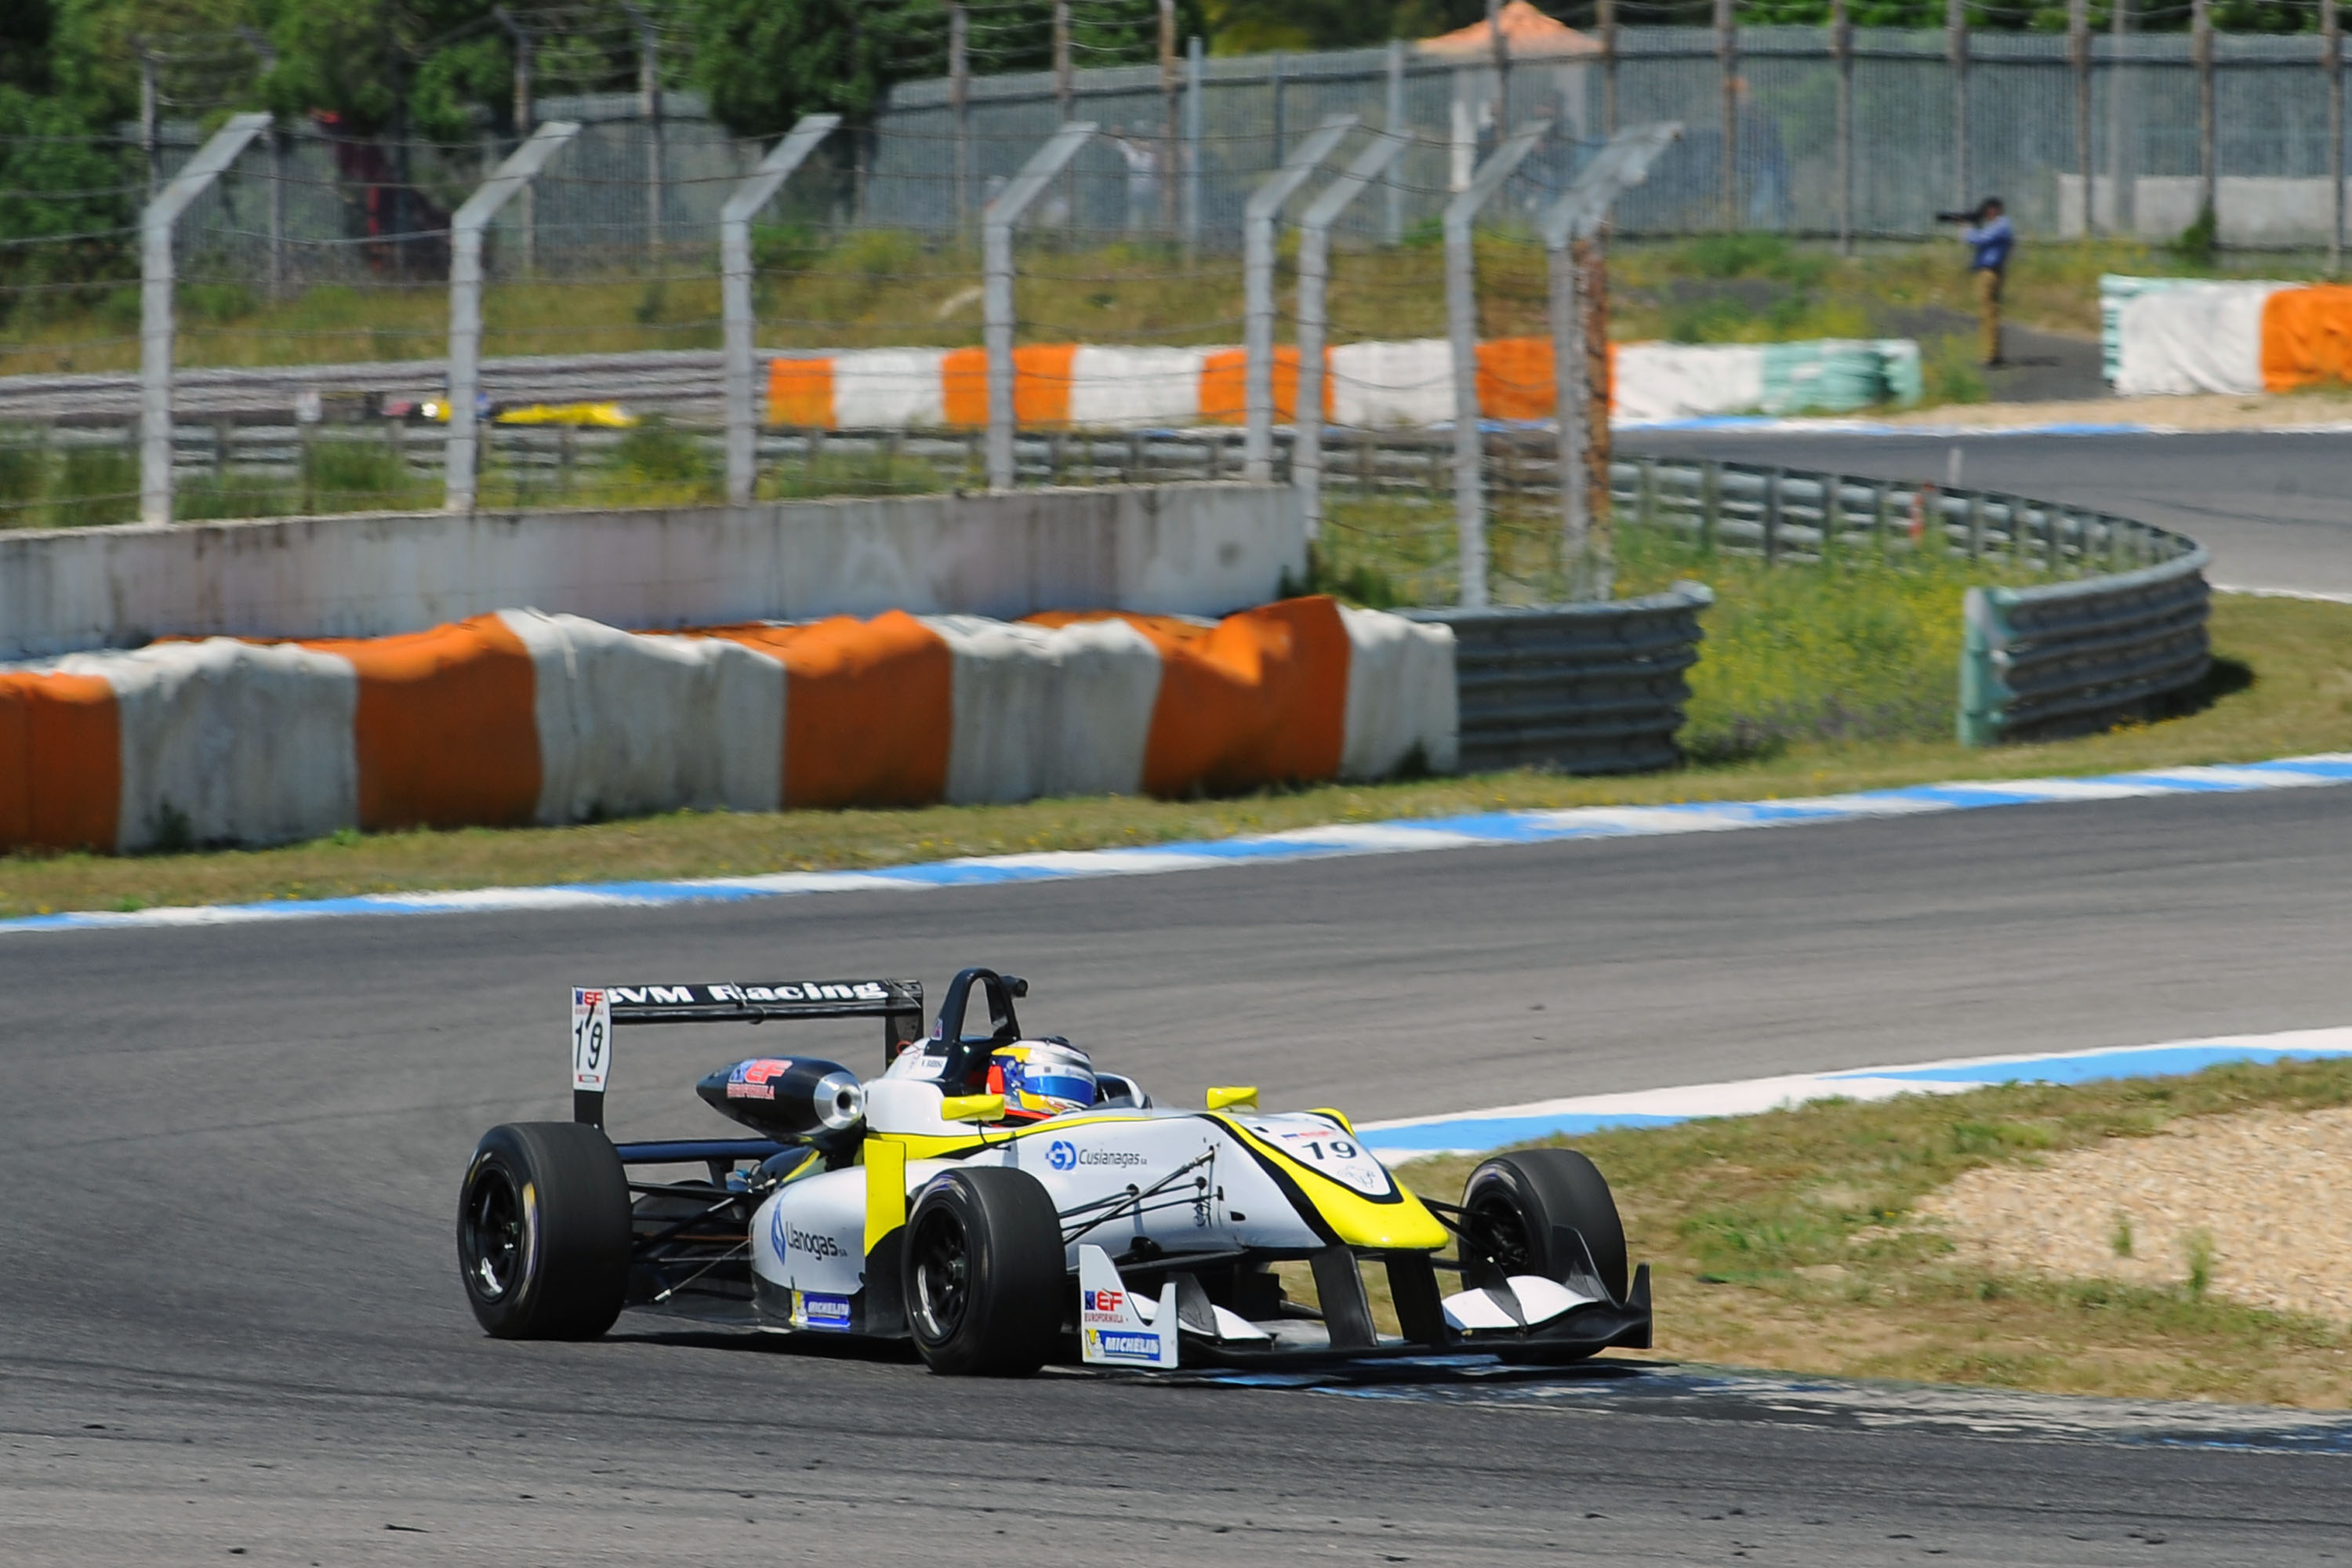 William Barbosa G. Euroformulaopen2015 Estoriol 10_05-2015_3.jpg